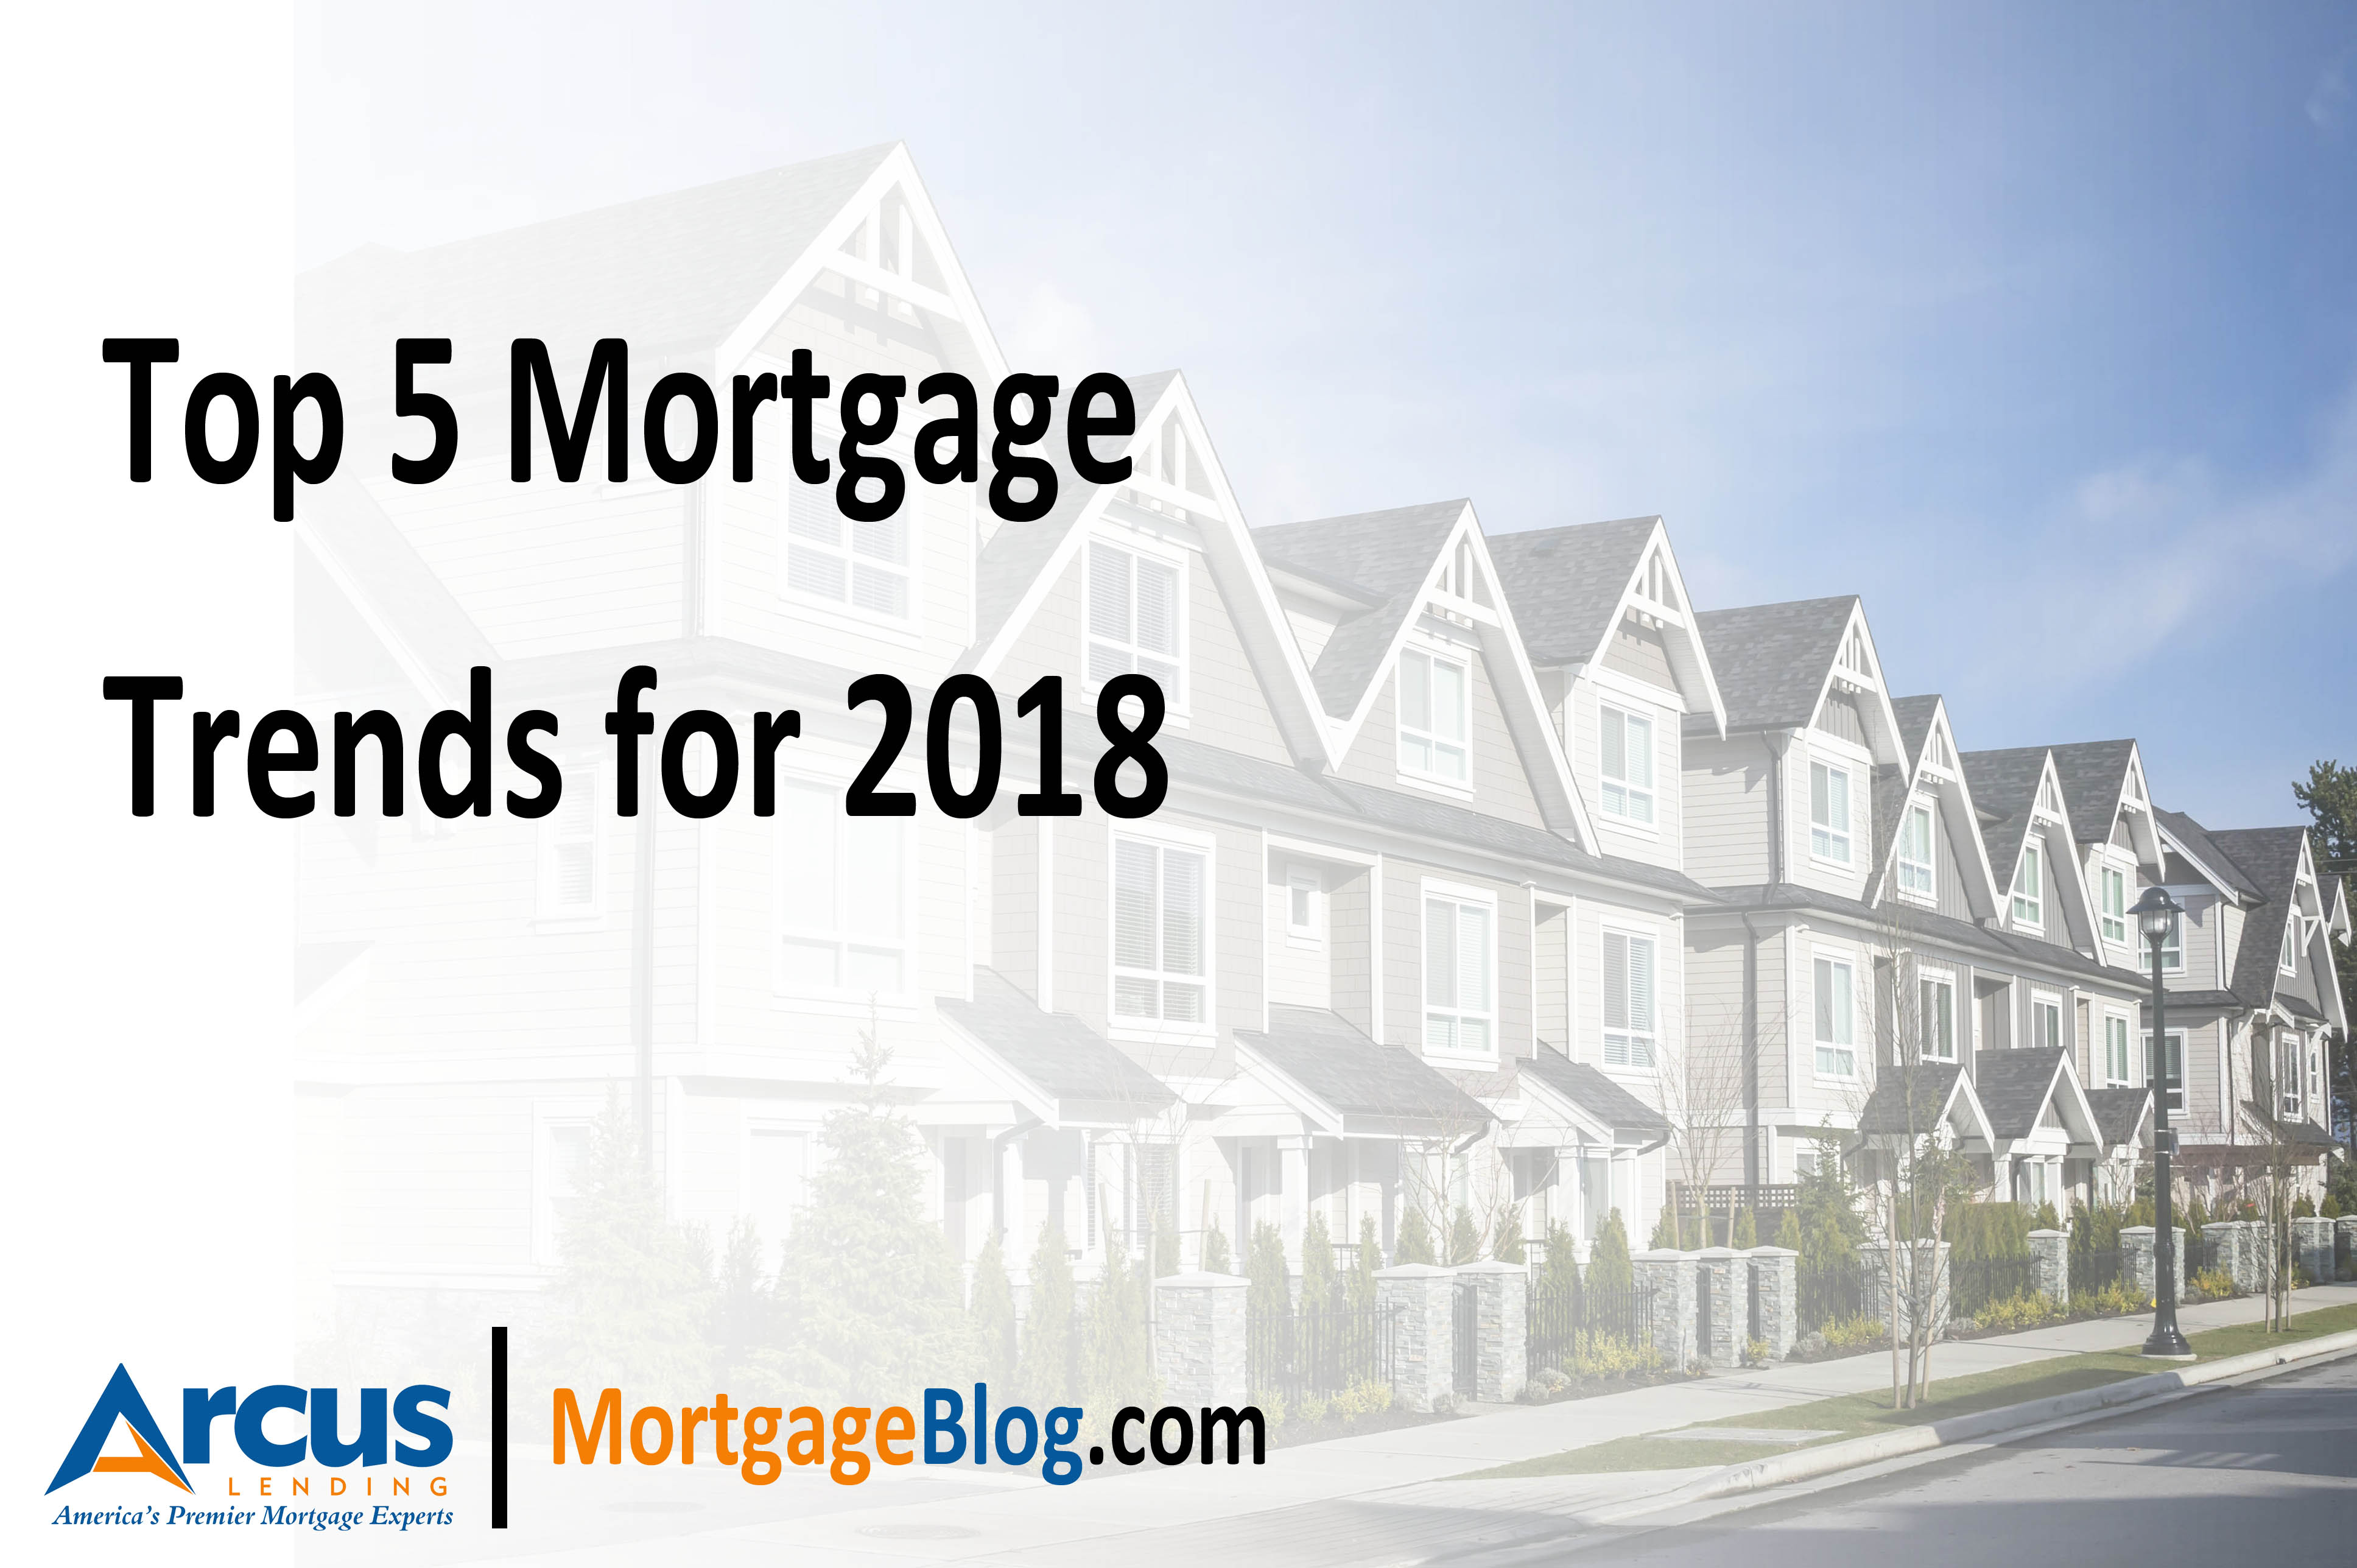 Top 5 Mortgage Trends for 2018